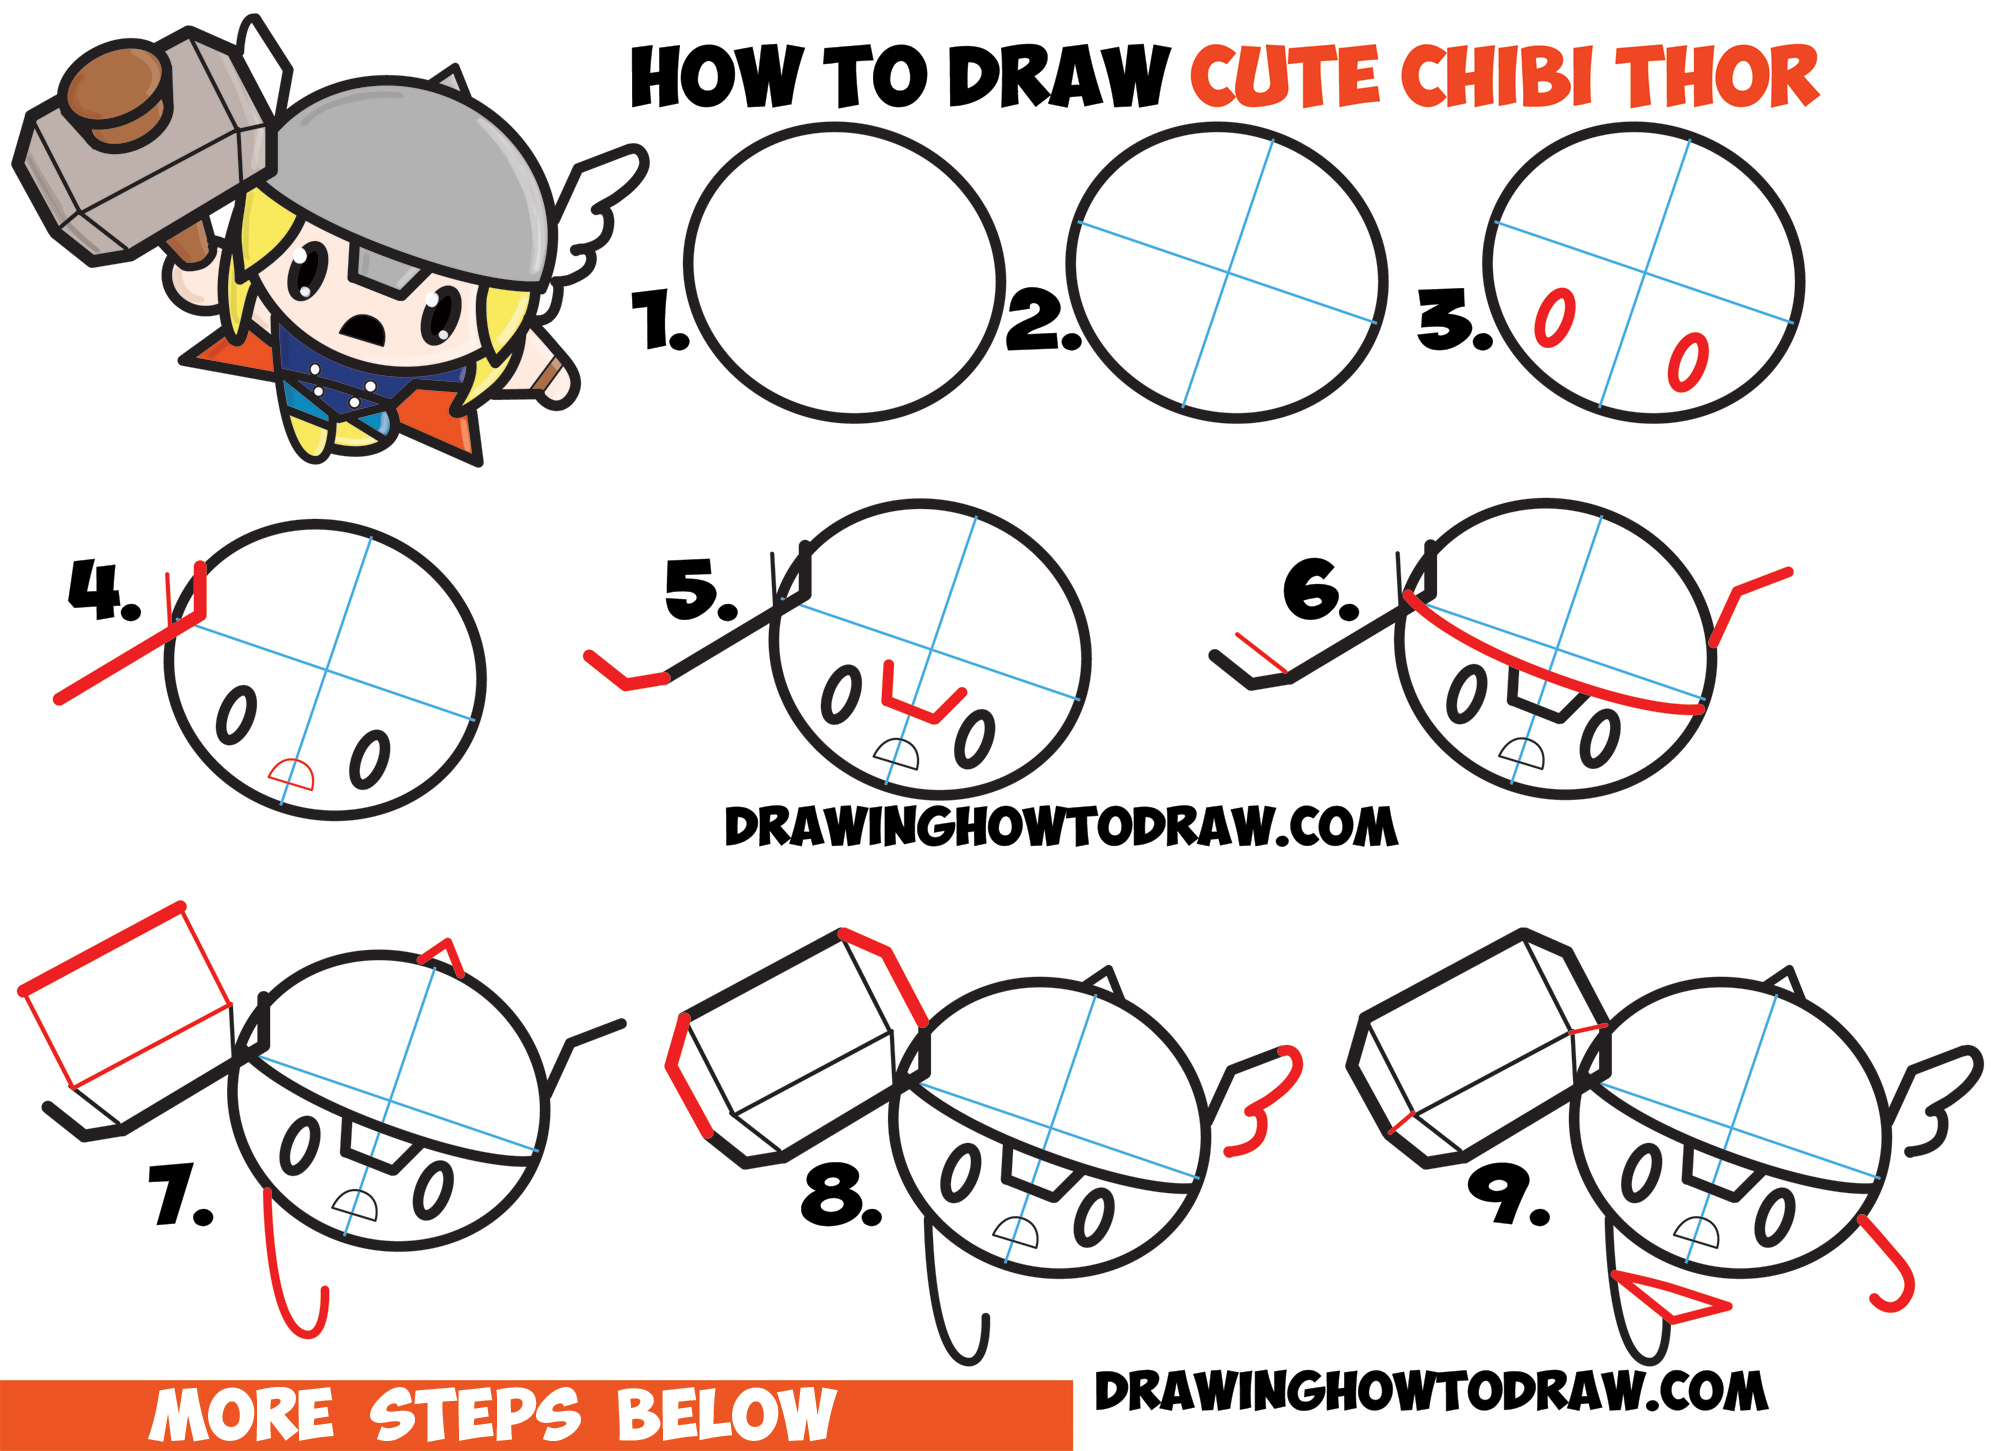 2000x1451 How To Draw Cute Chibi Kawaii Thor From Marvel Comics In Easy